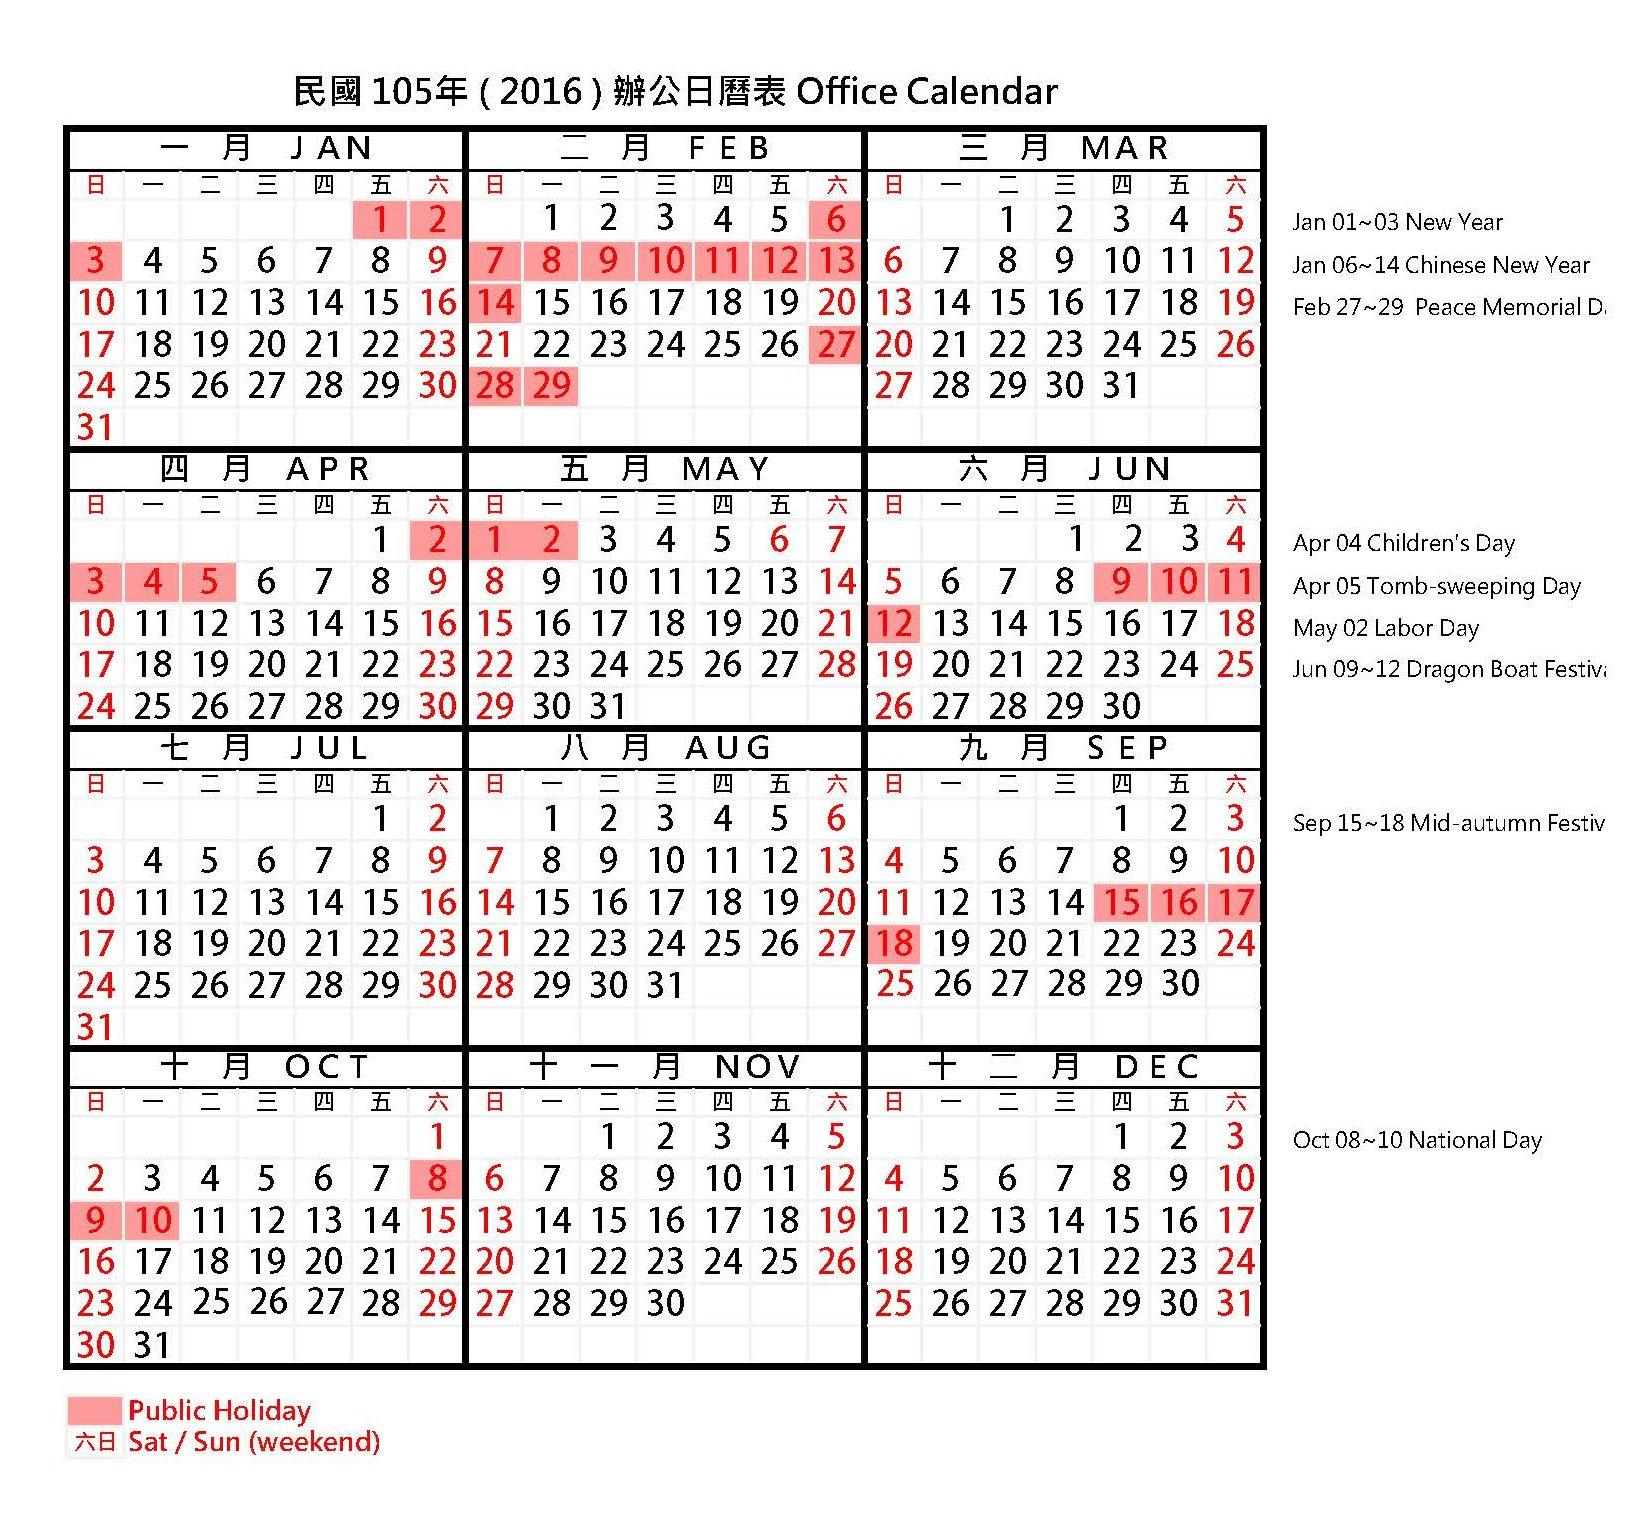 Office Calendar 2016 : Office calendar seven castle ent co ltd